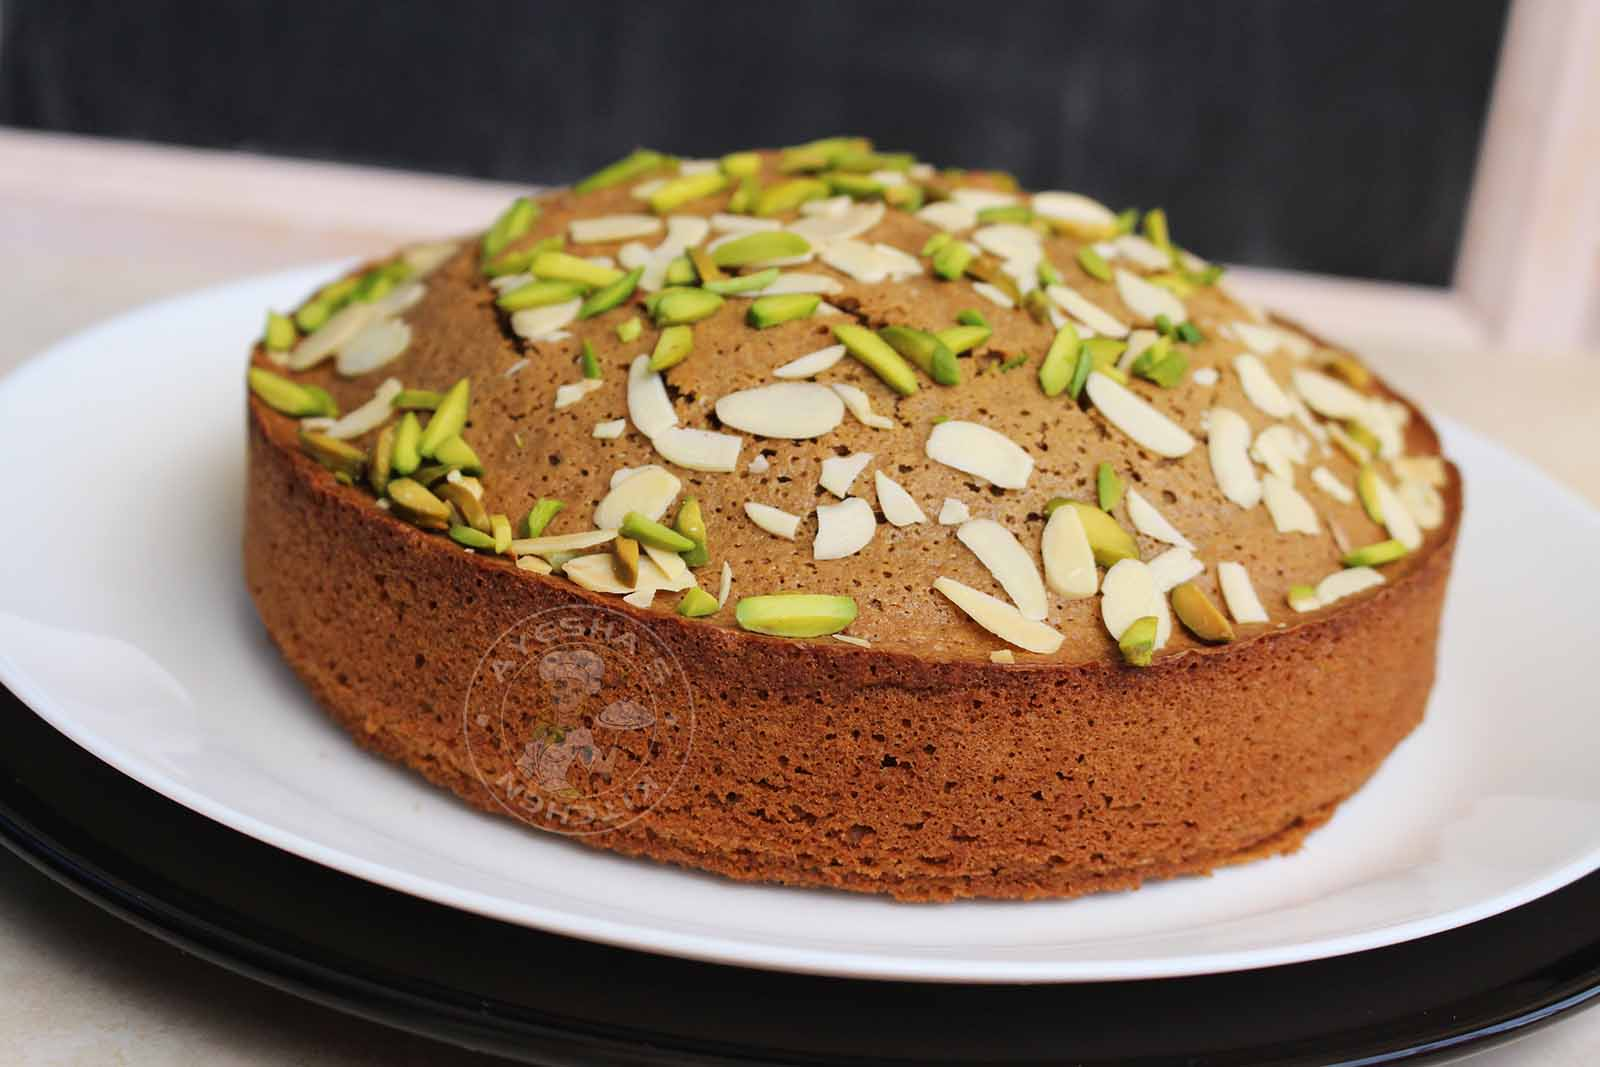 Nutrimix recipes amrutham podi cake healthy cake recipes for healthy cake recipes low sugar cake low sugar cake recipes for toddlers toddlers food recipes also please check how to make then nilavu sweet and forumfinder Choice Image